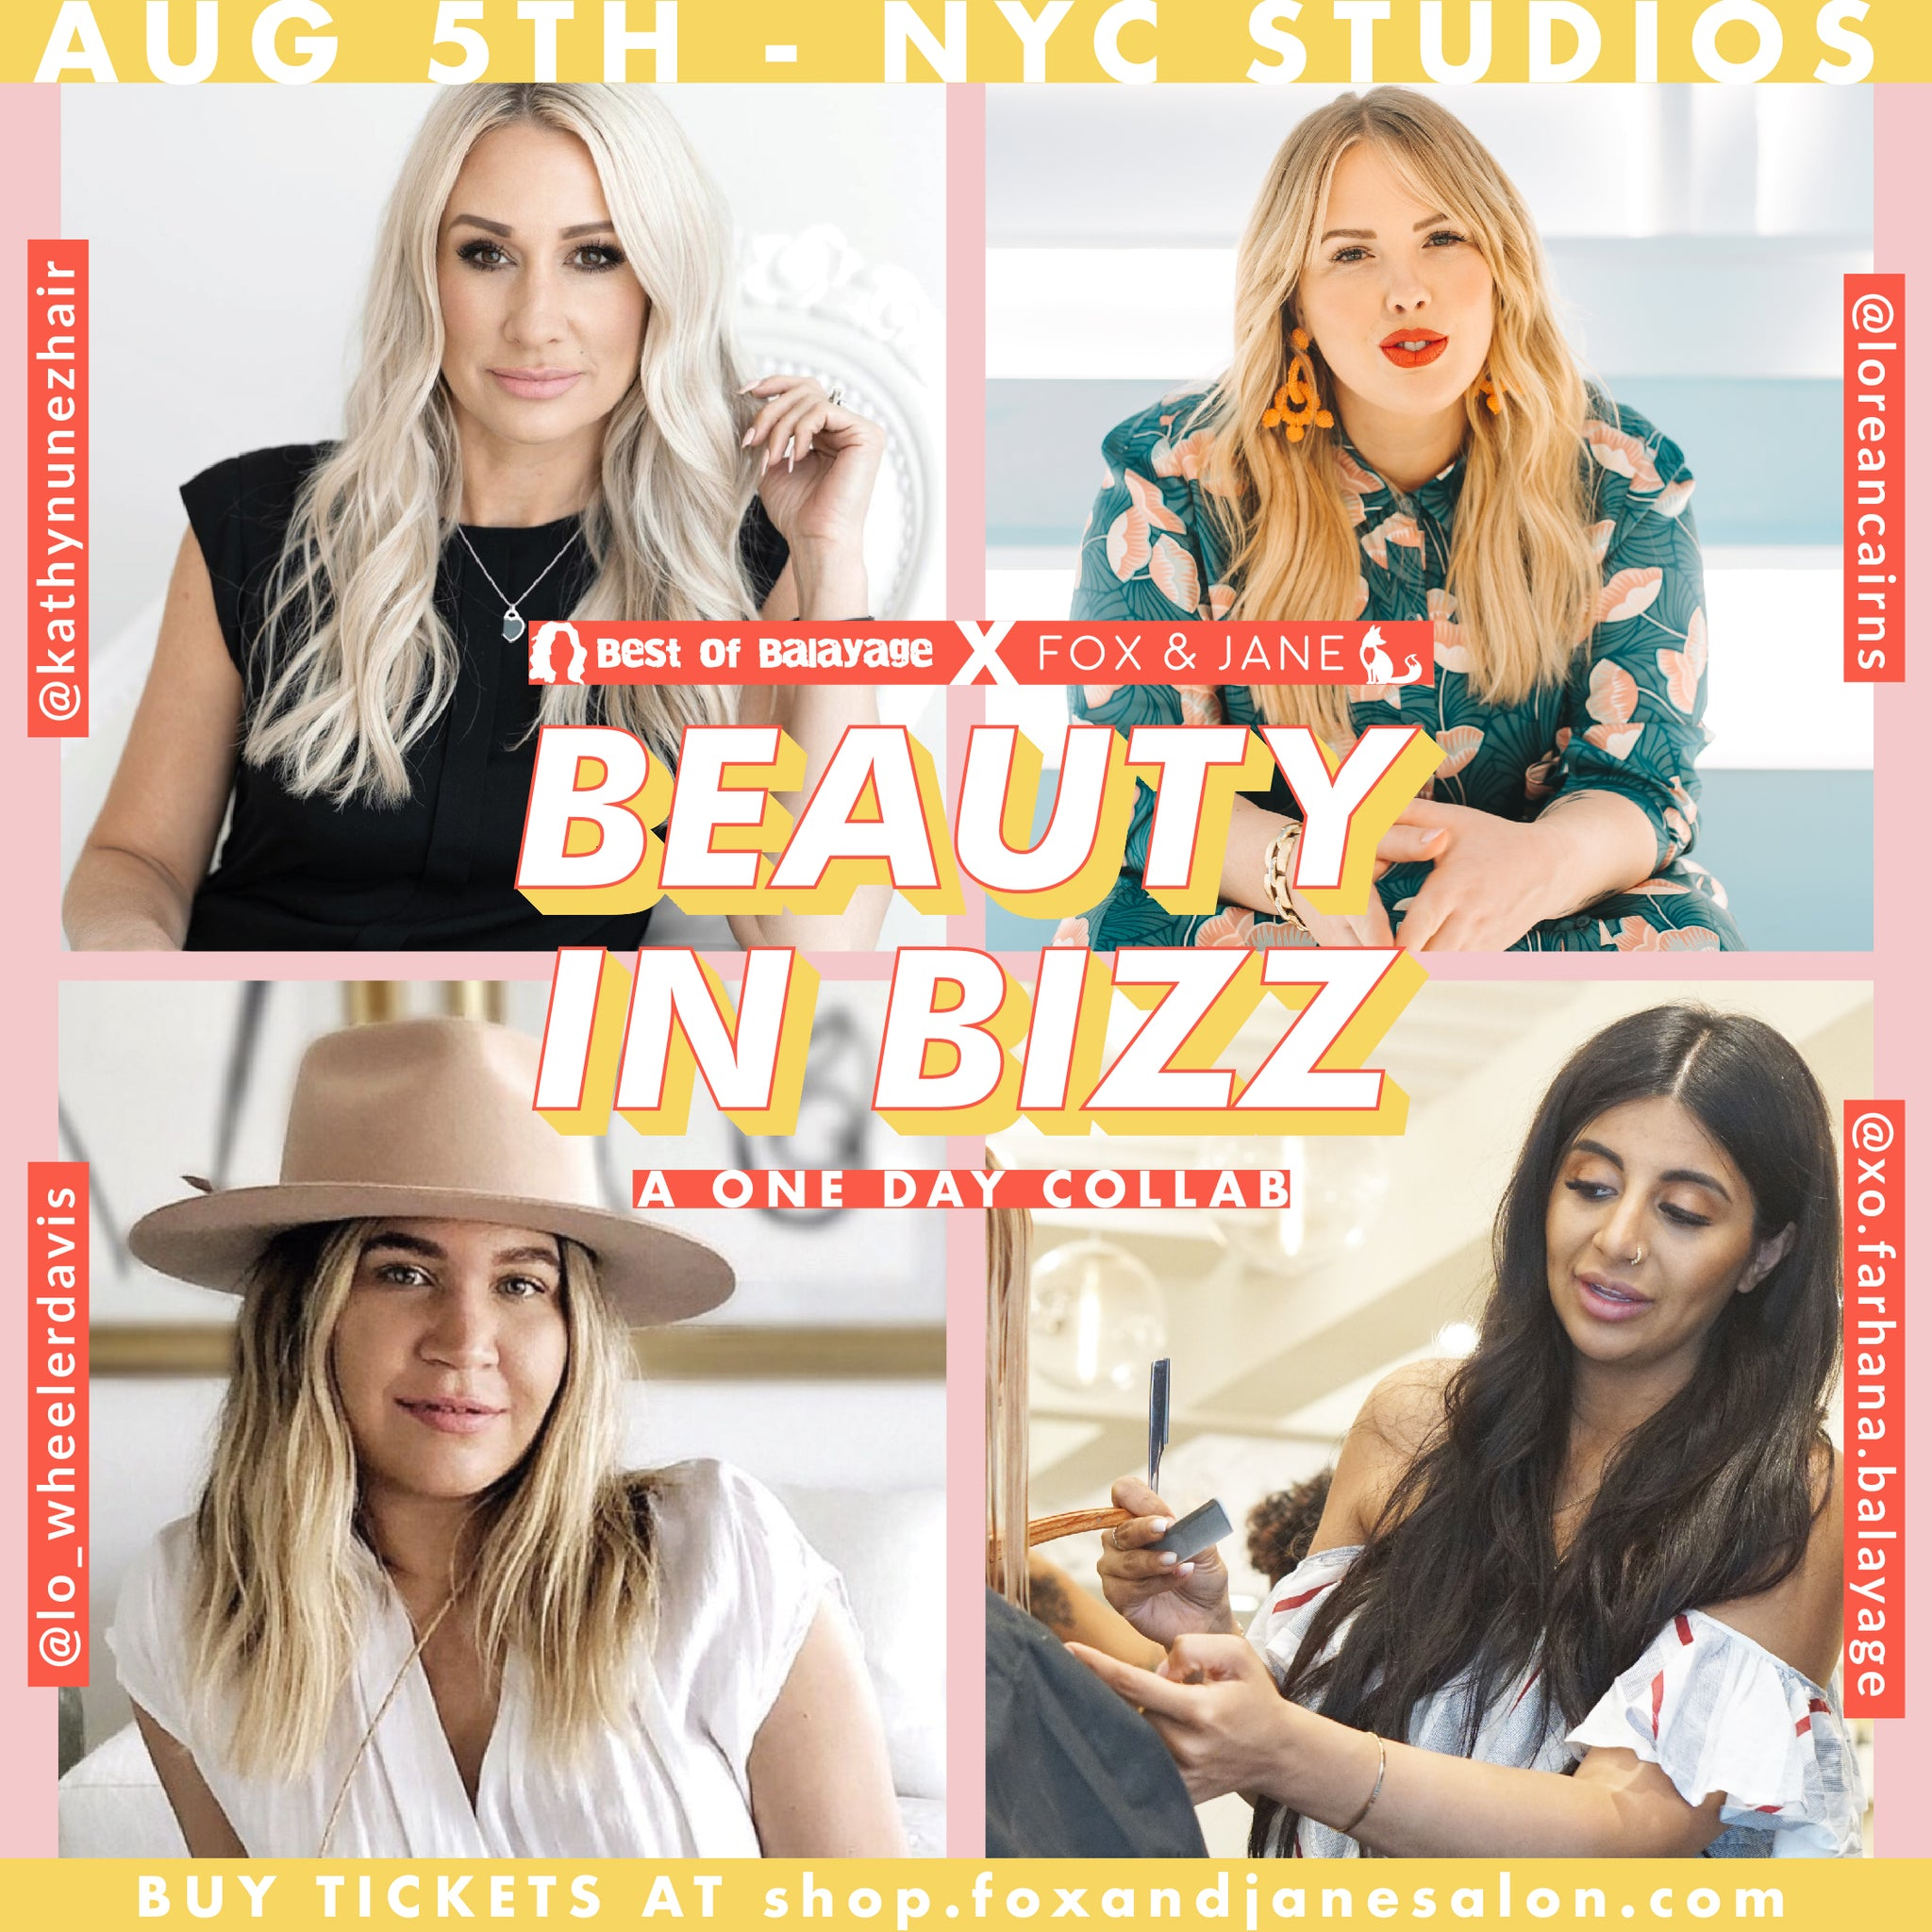 August 5th: BEAUTY IN BIZZ